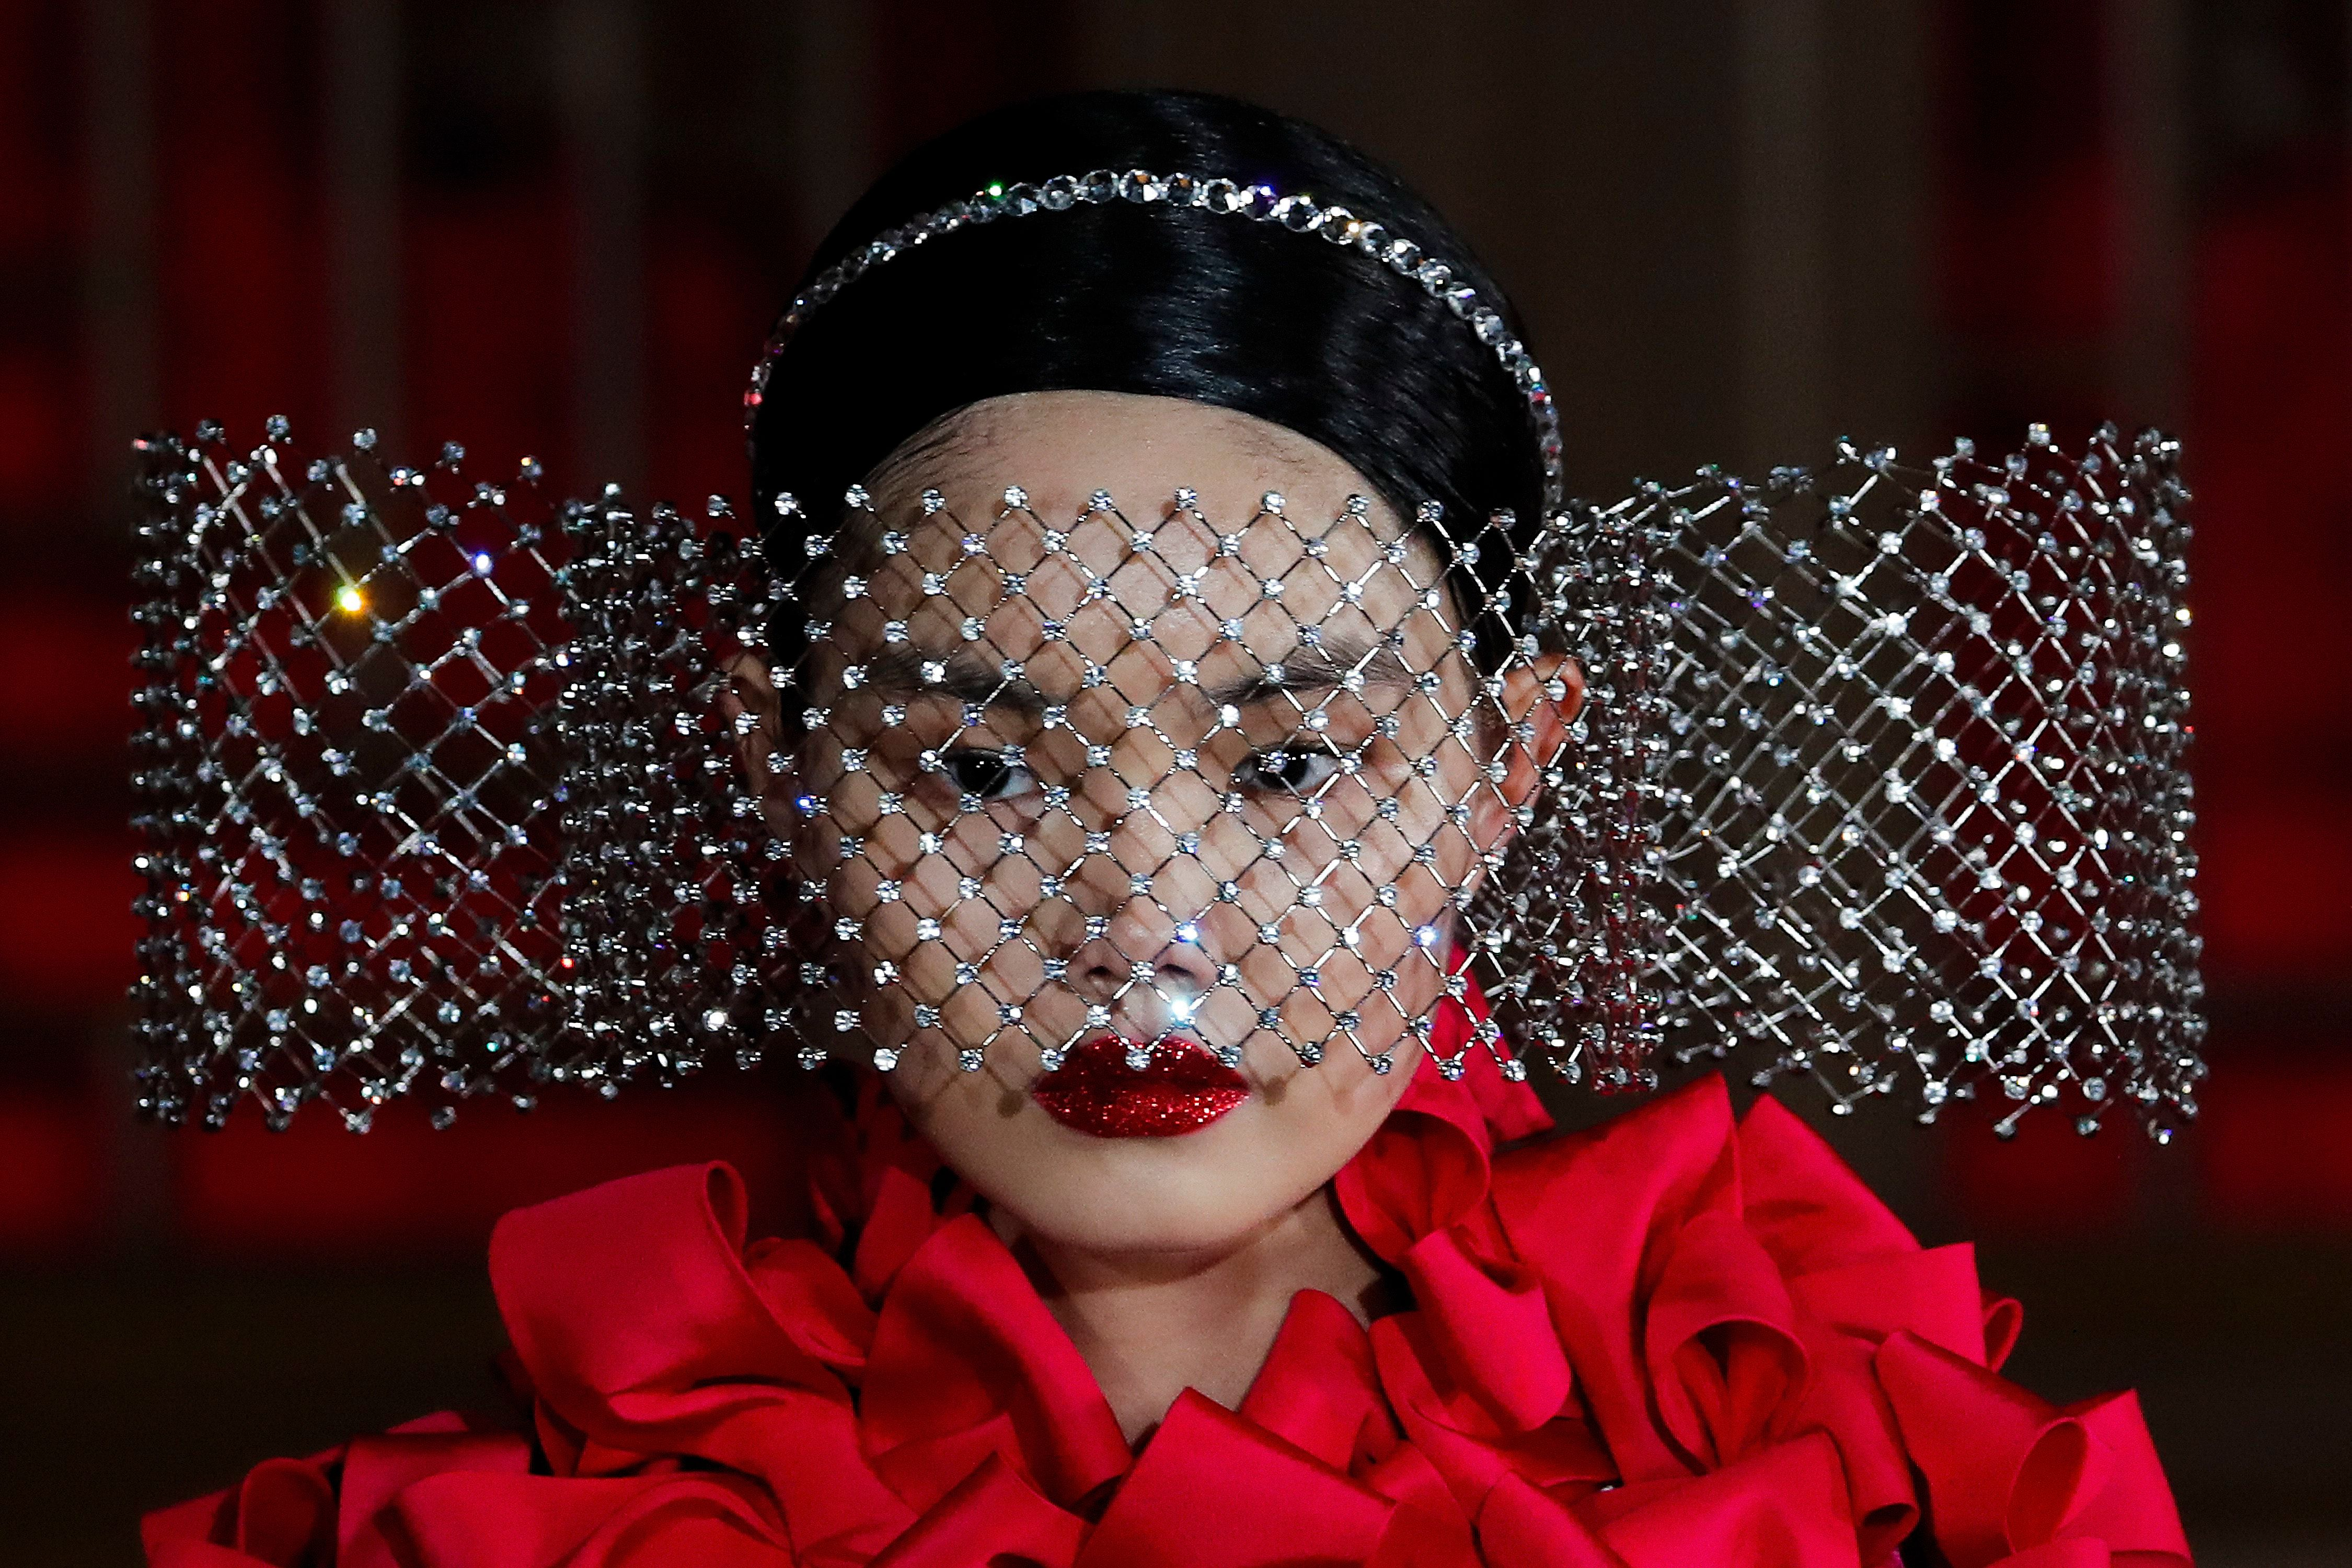 A model presents a creation from Valentino Haute Couture collection by designer Pierpaolo Piccioli during a fashion show at the Aman Summer Palace in Beijing.